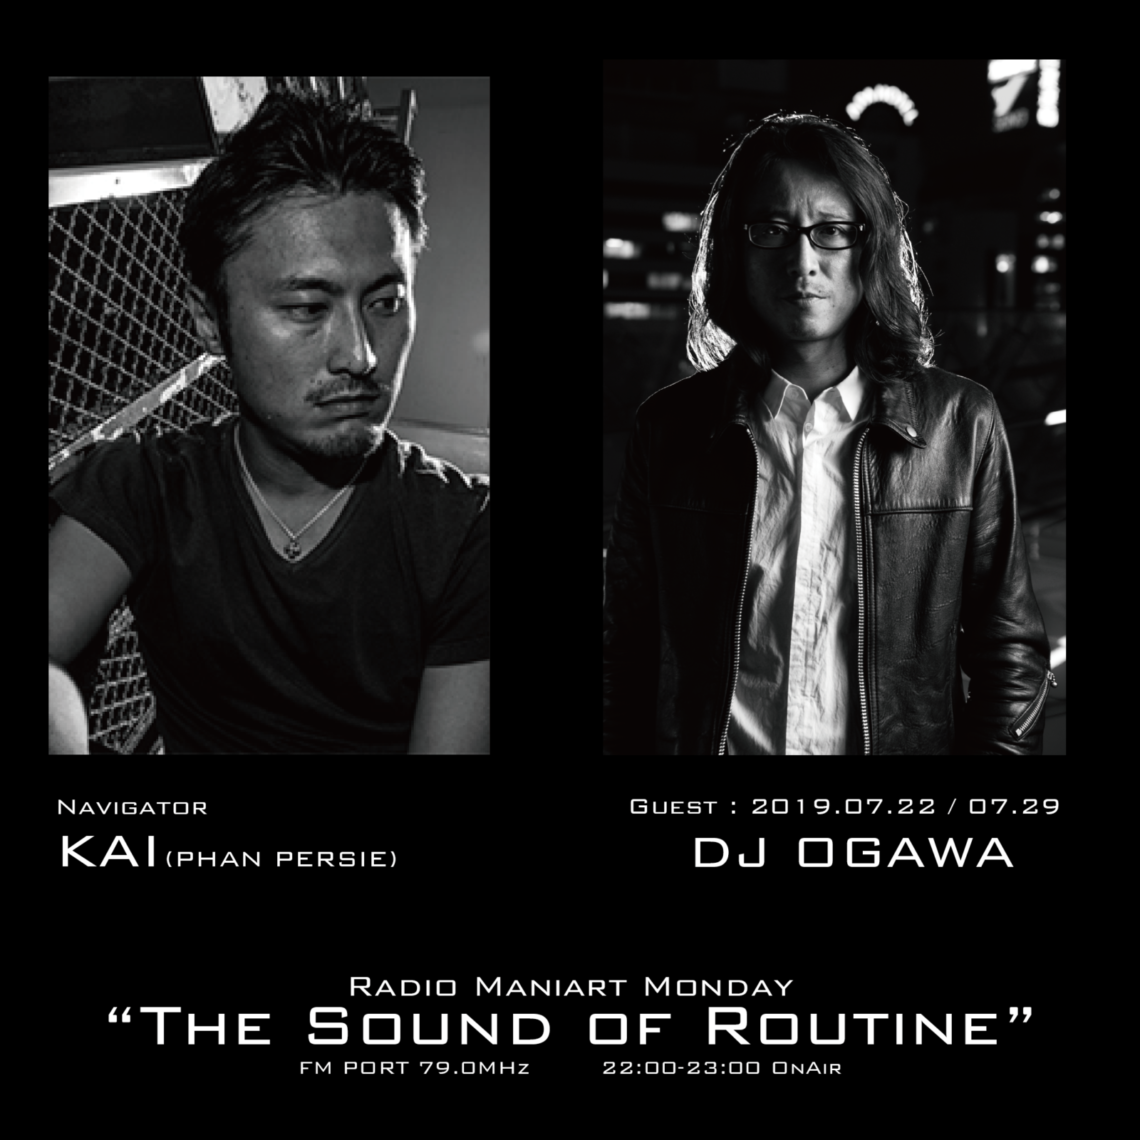 2019. 7. 22 MON, 7. 29 MON – KAI : Navigator on FM PORT / the Sound of Routine – Guest :DJ OGAWA